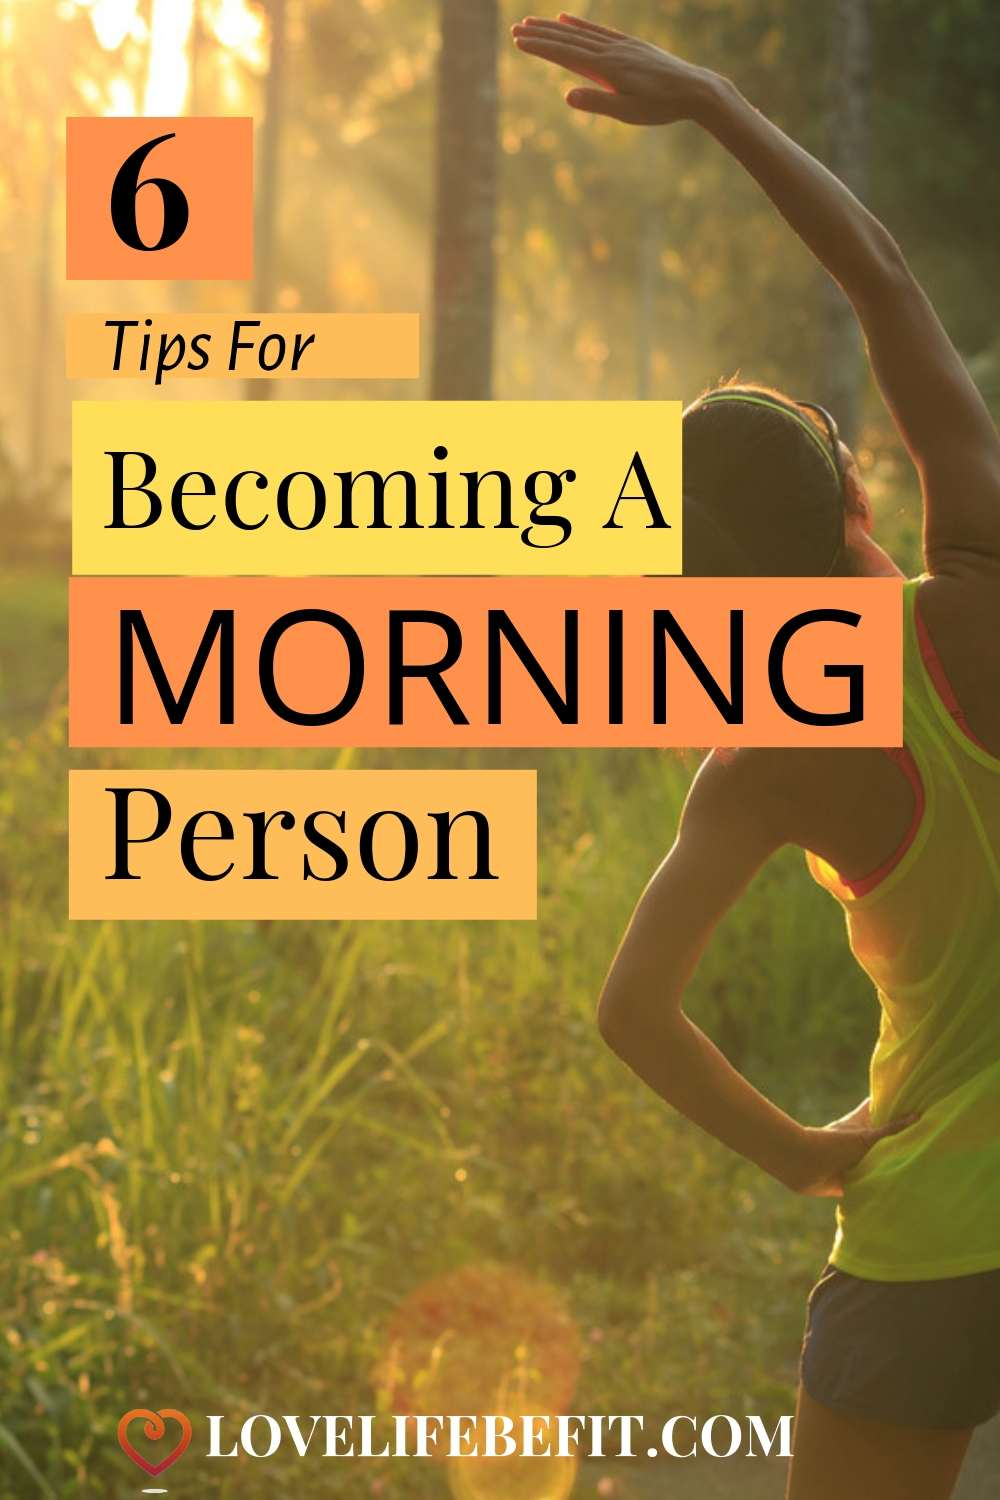 Not all of us are naturally a morning person. Some of us are wide awake at night but really struggle to get the brain in gear when the alarm goes off. Unfortunately most people\'s body clocks are over-ruled by 9-to-5 jobs and school runs. Here are some tips to becoming a better morning person...